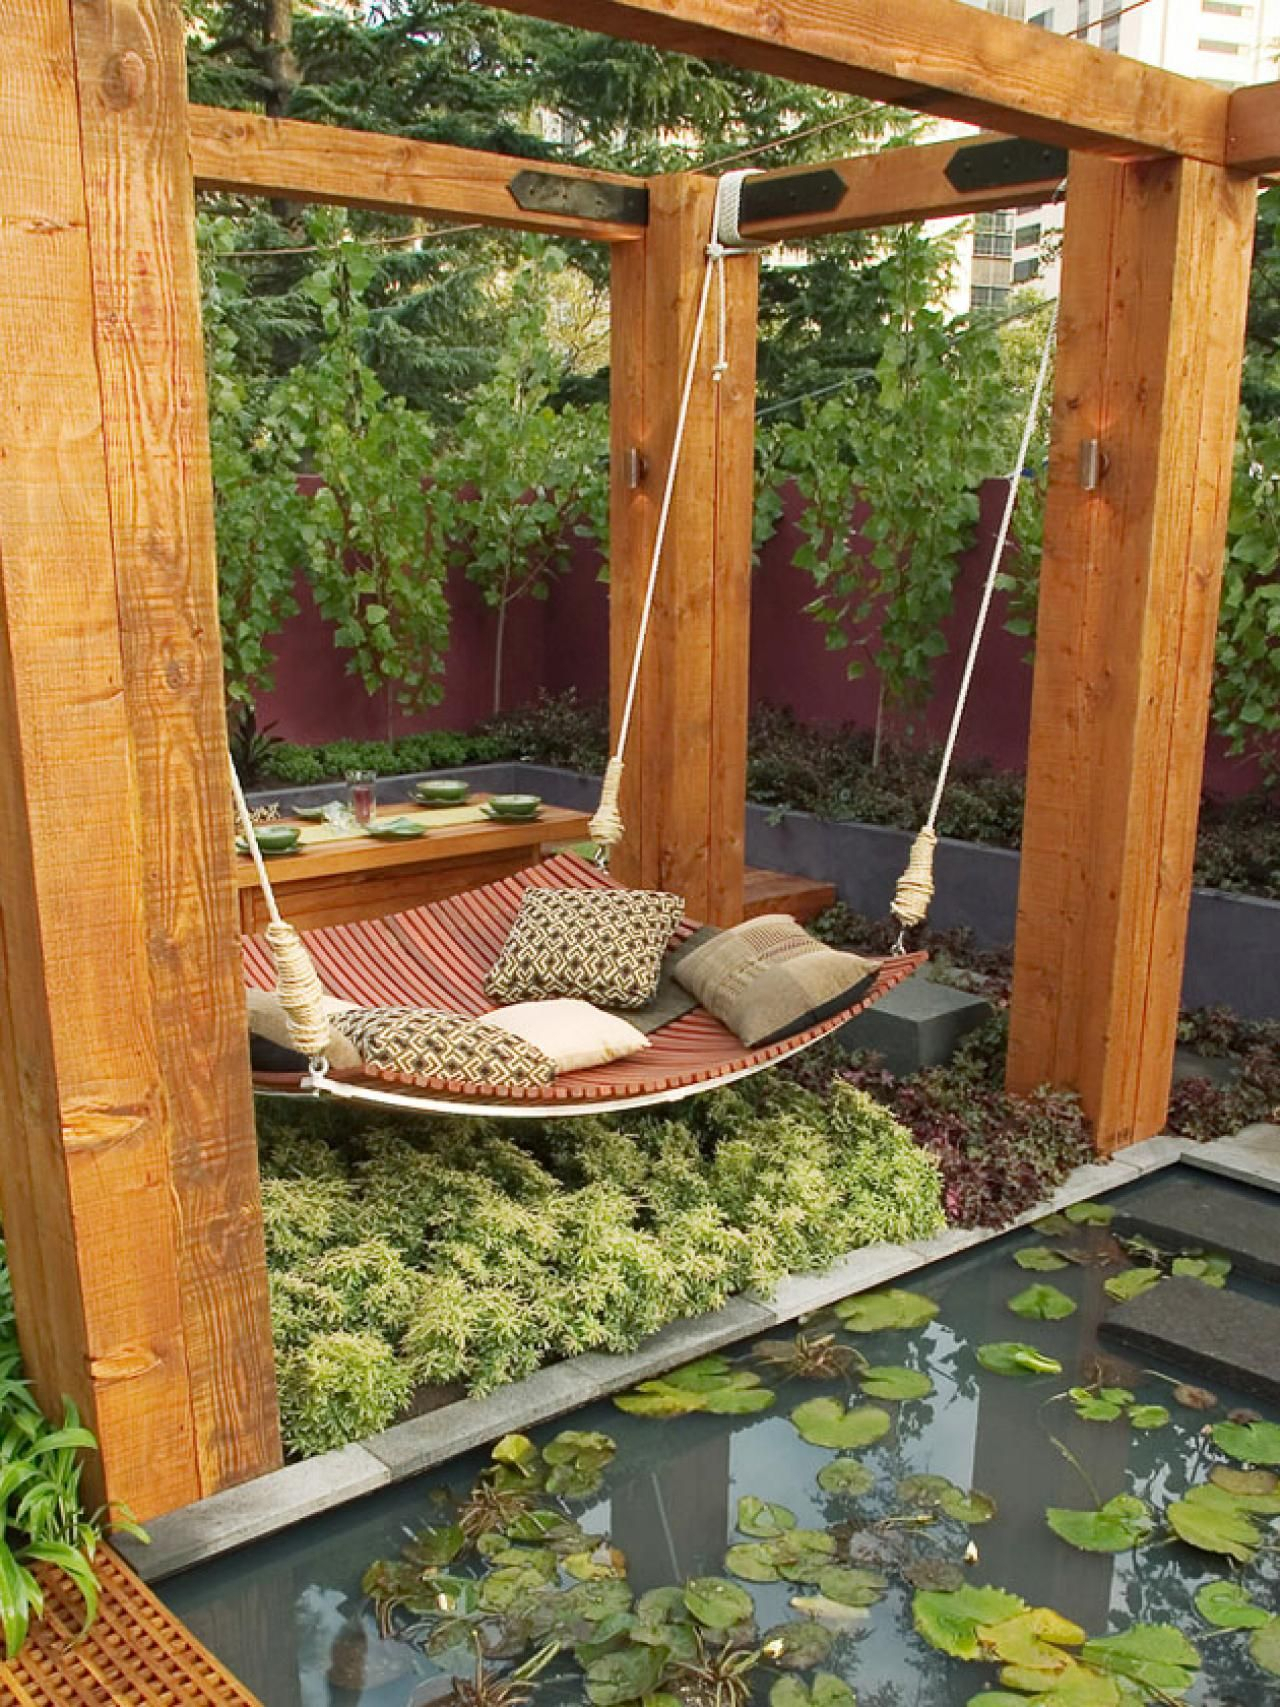 Asian Inspired Backyard Landscaping Ideas Garden Design intended for 13 Clever Designs of How to Improve Asian Backyard Ideas